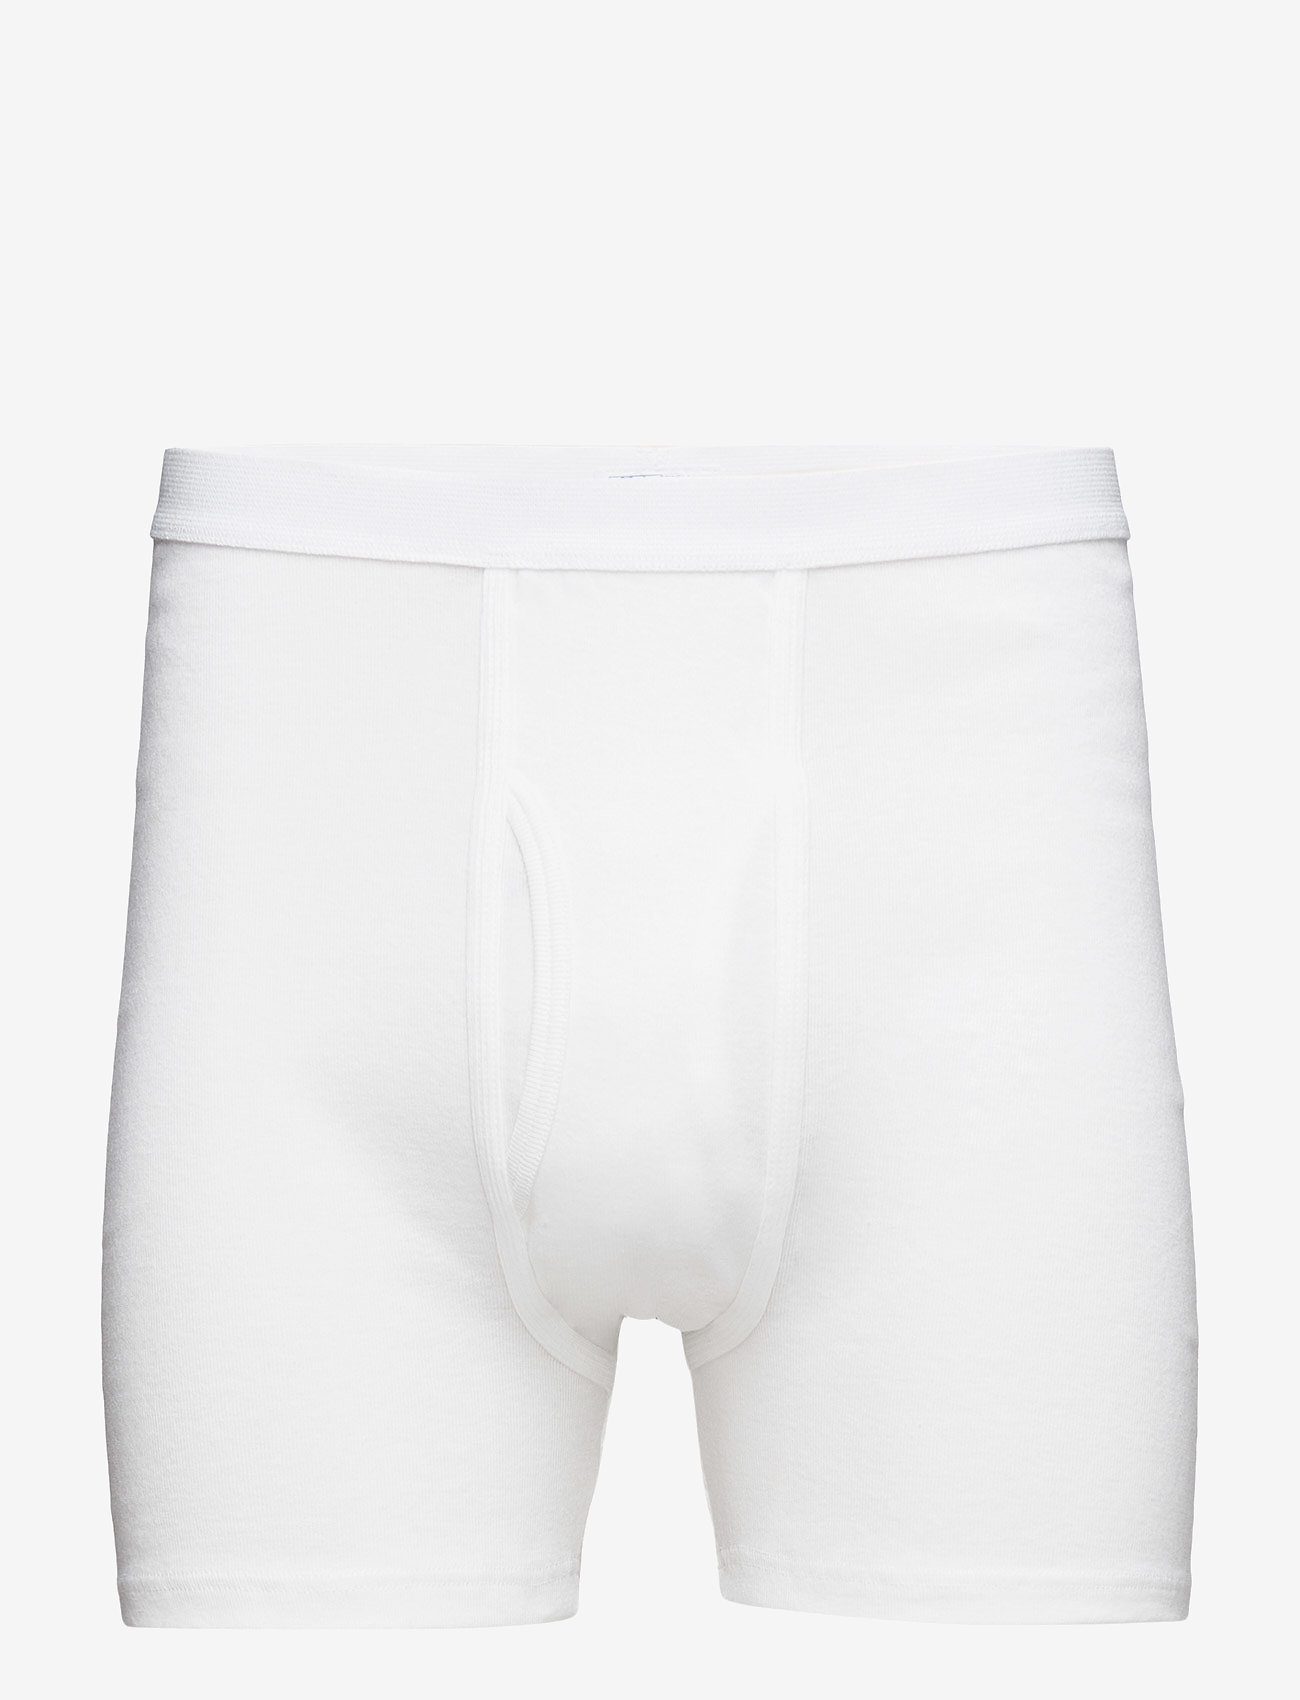 JBS - Original tights - ondergoed - white